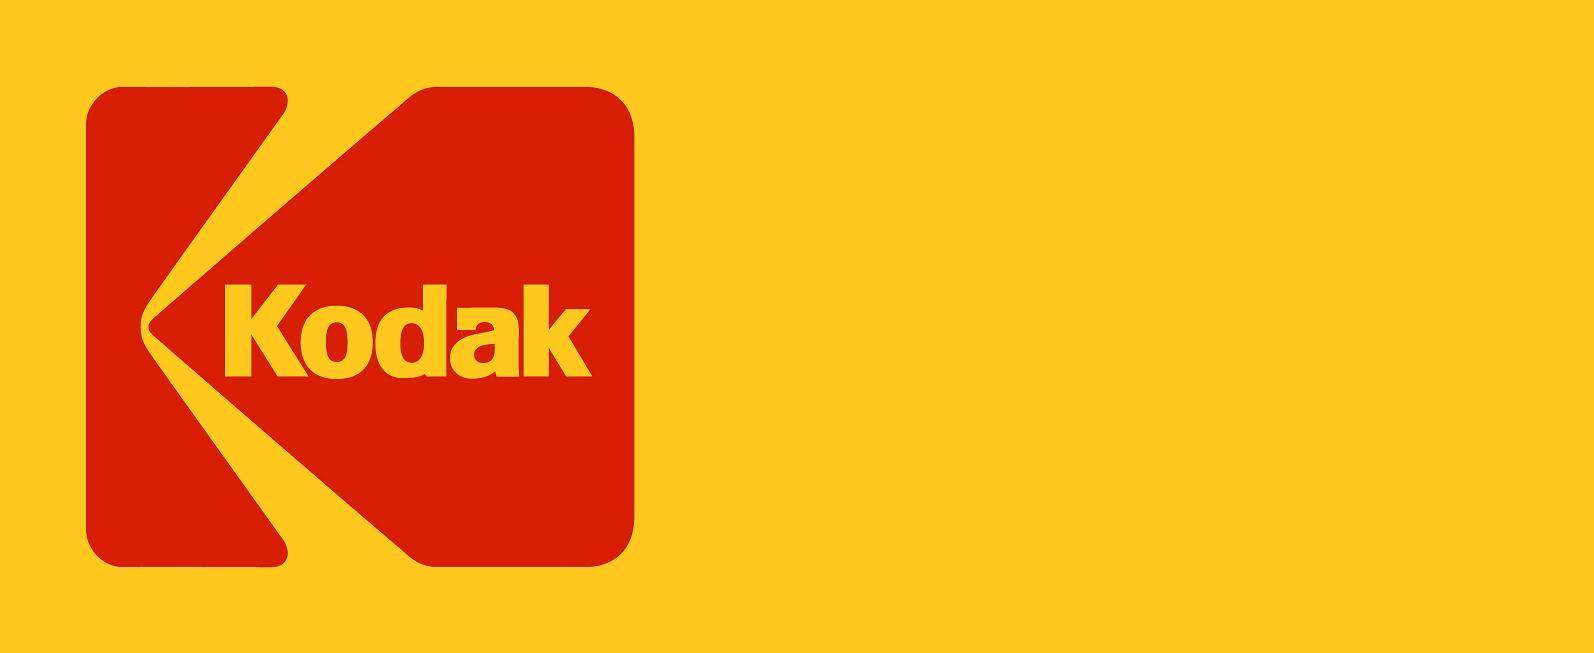 History of All Logos: All Kodak Logos